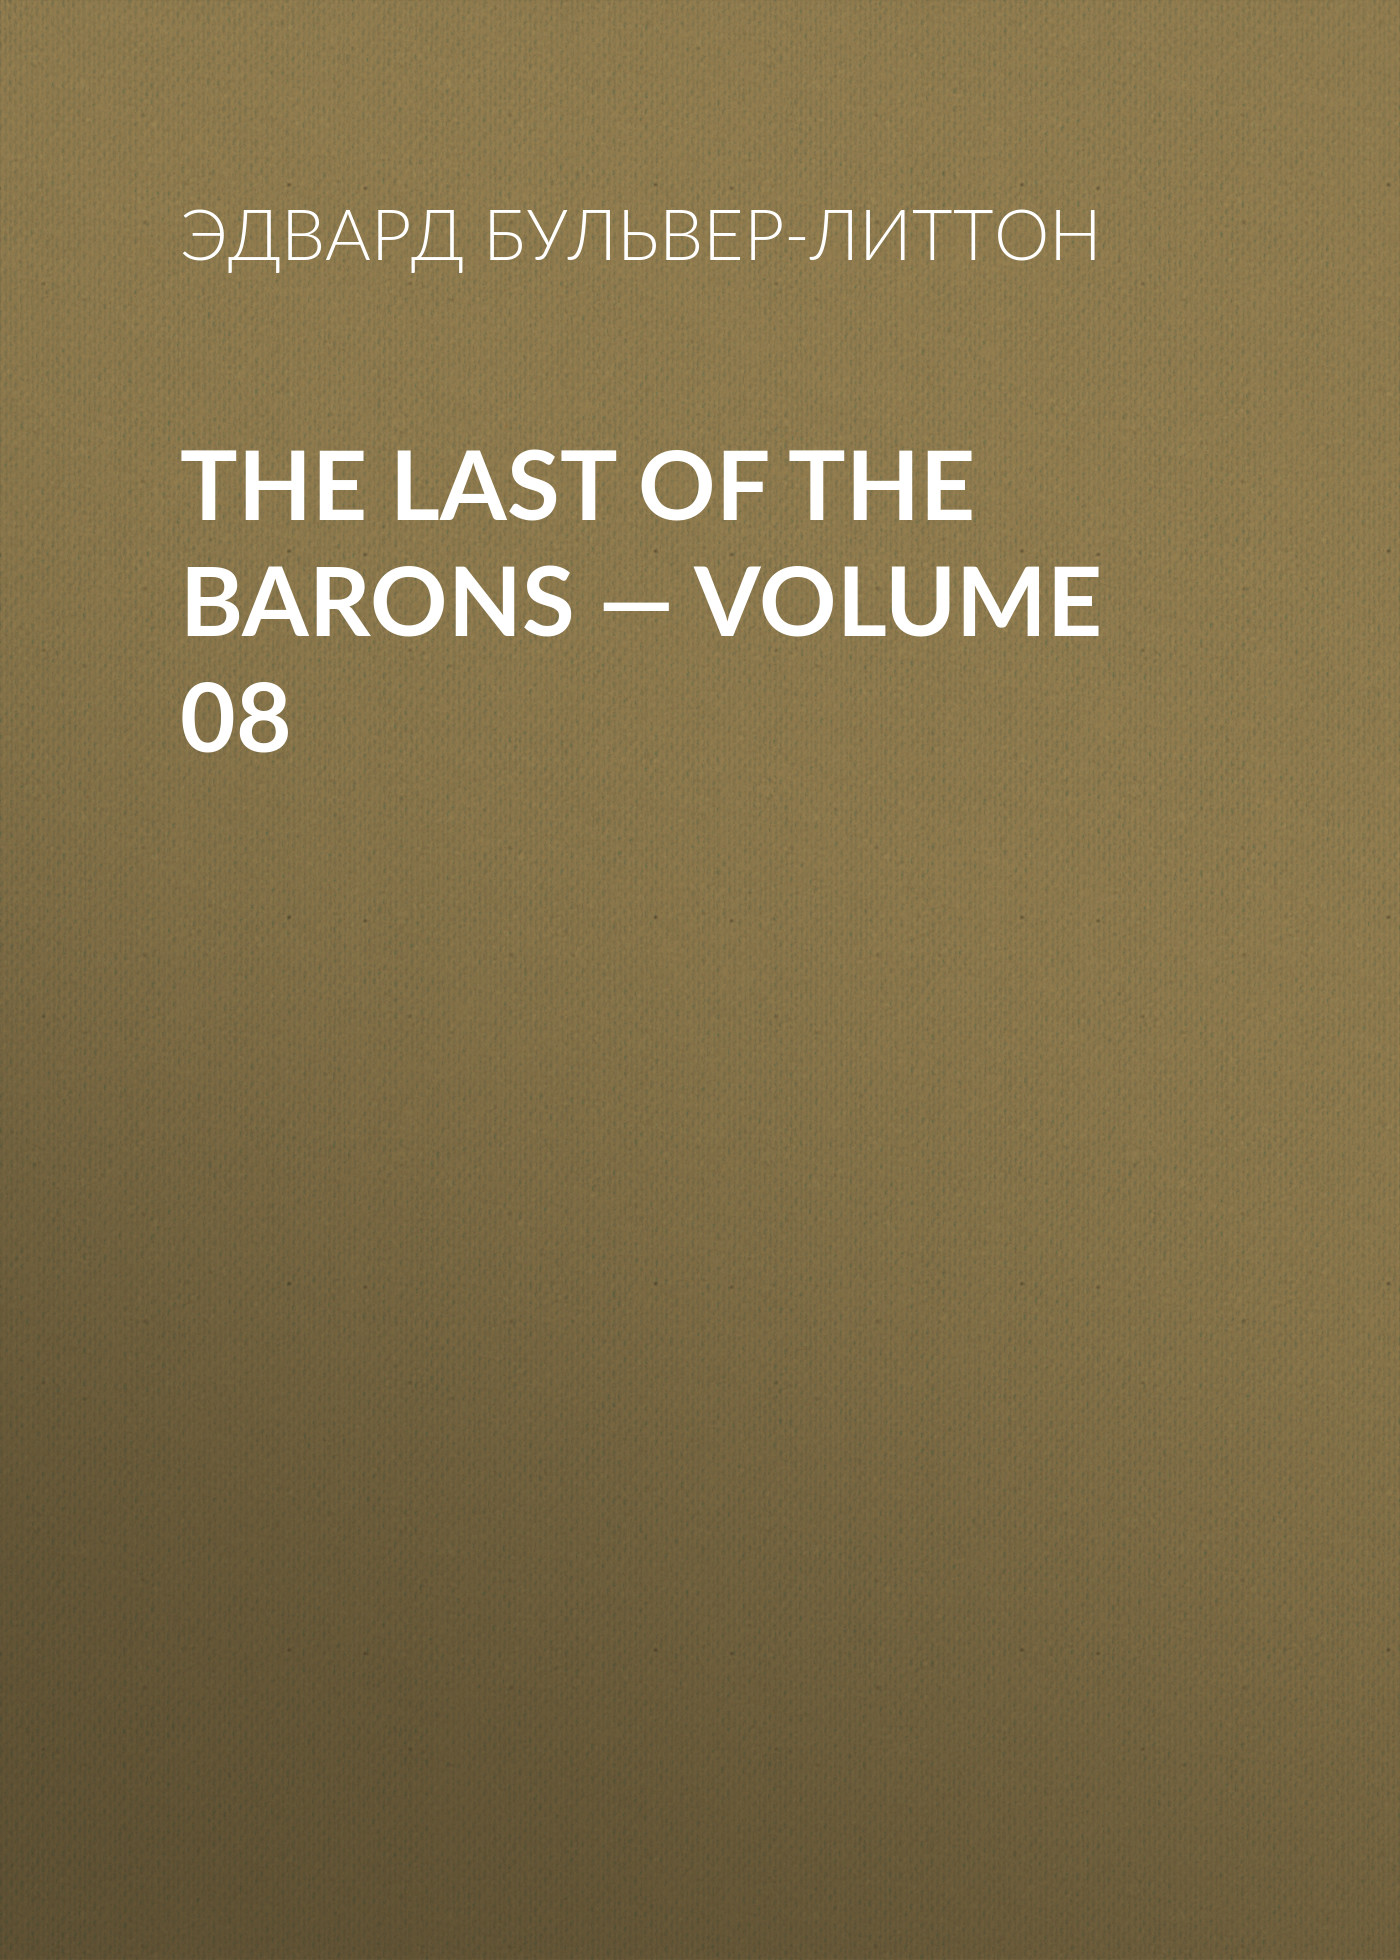 Эдвард Бульвер-Литтон The Last of the Barons — Volume 08 эдвард бульвер литтон harold the last of the saxon kings volume 10